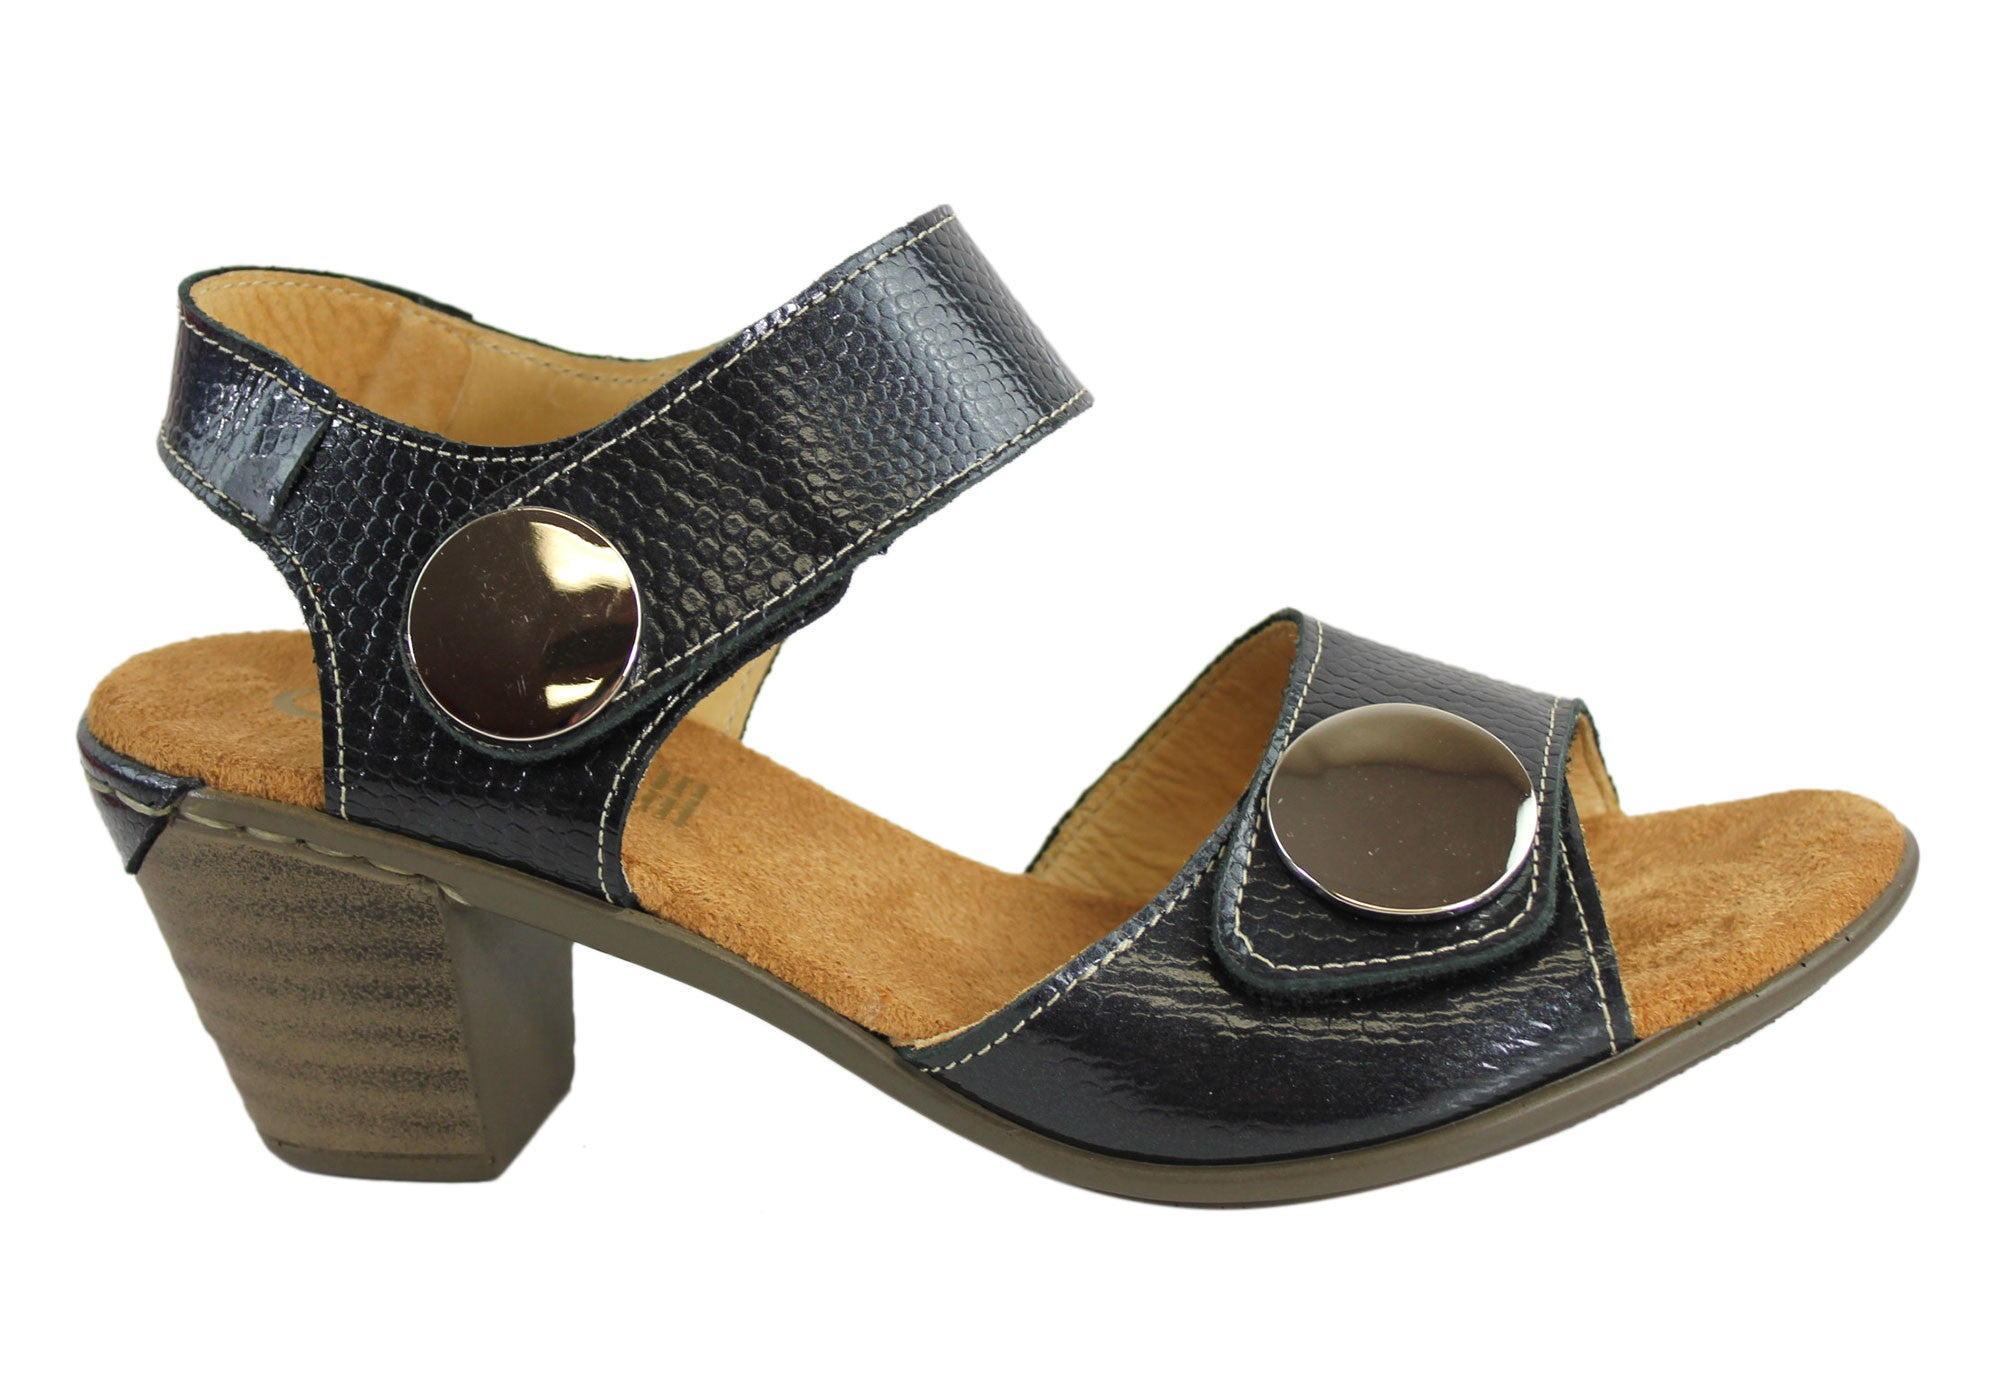 Beautiful NEW AEROBICS FRIEND WOMENS HAND MADE IN PORTUGAL LEATHER SHOES | EBay